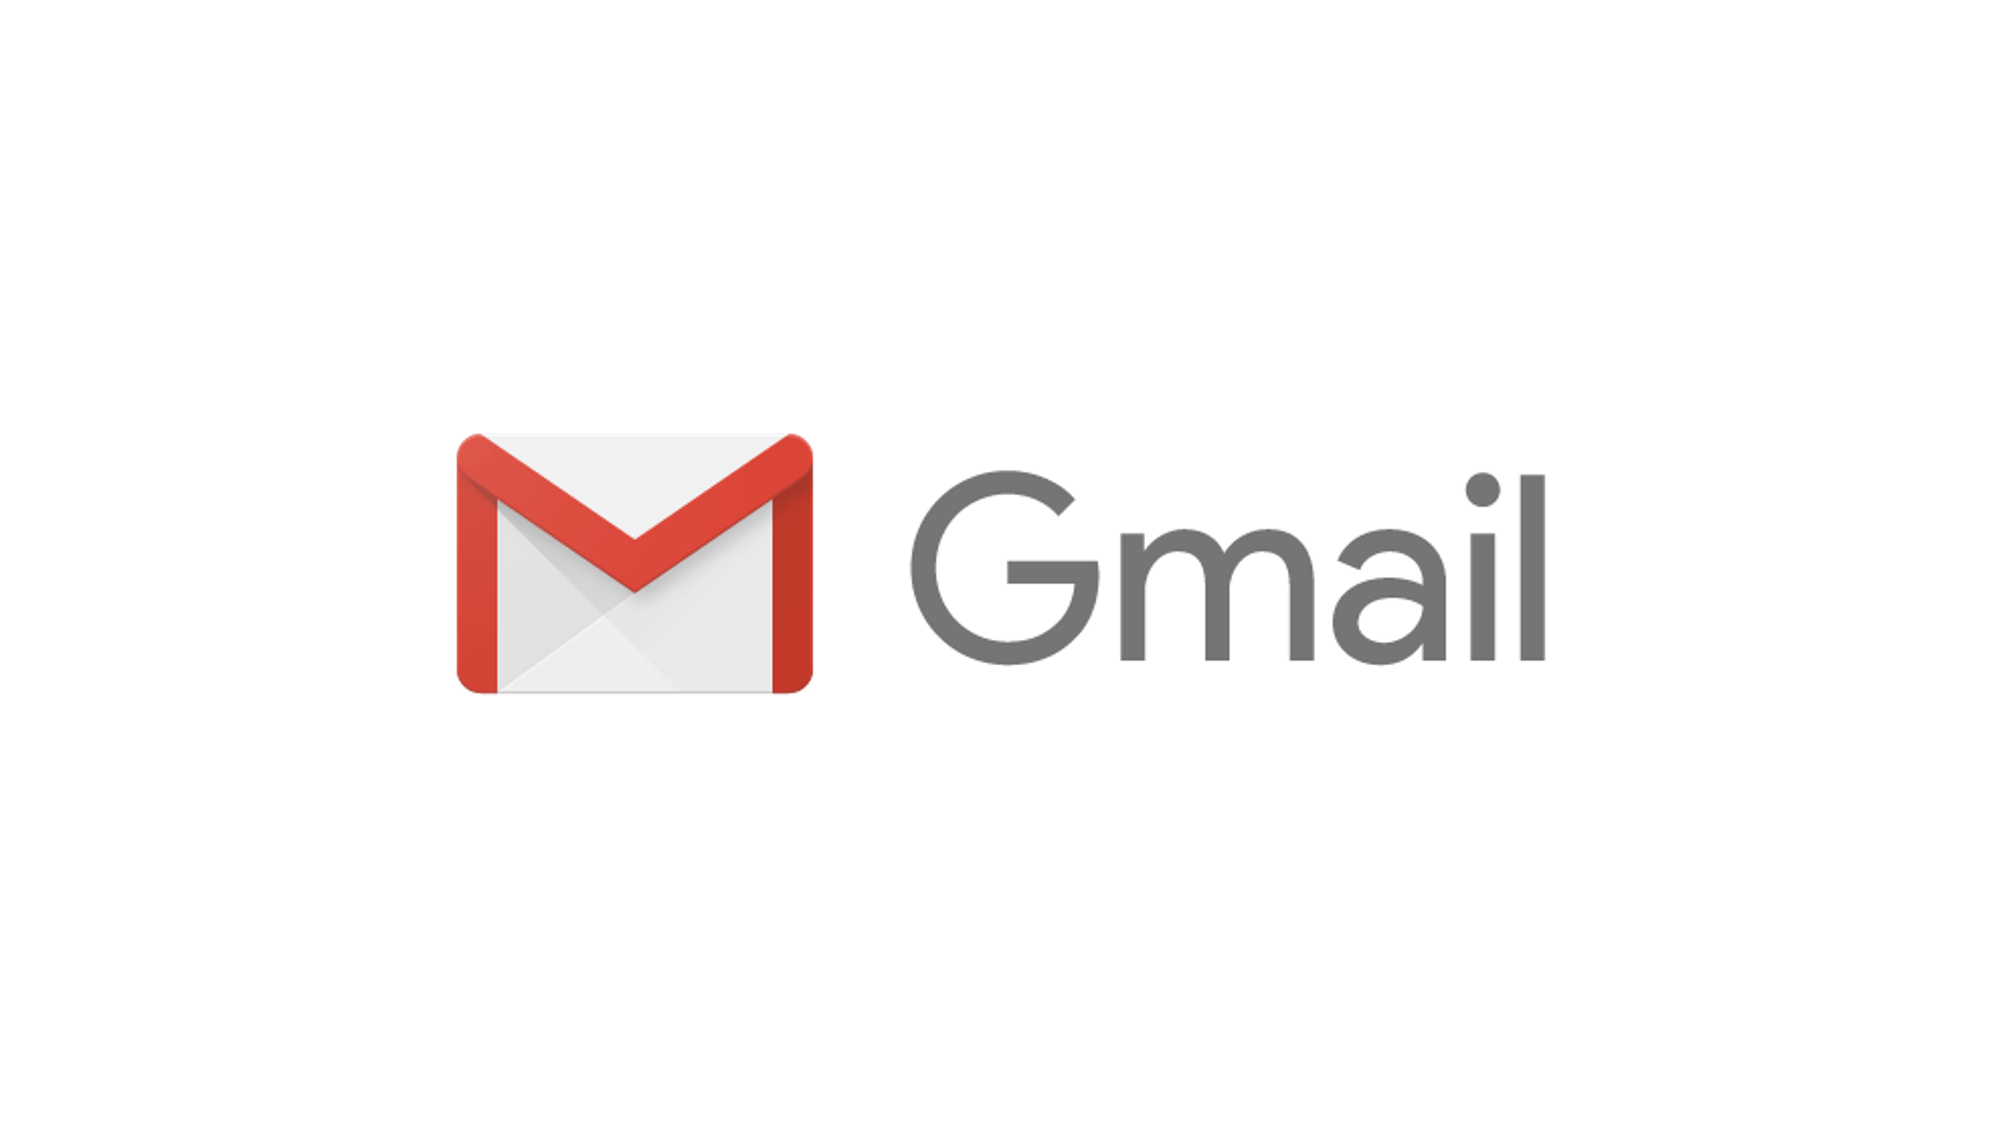 Bundles like Inbox could be coming to Gmail - Ausdroid